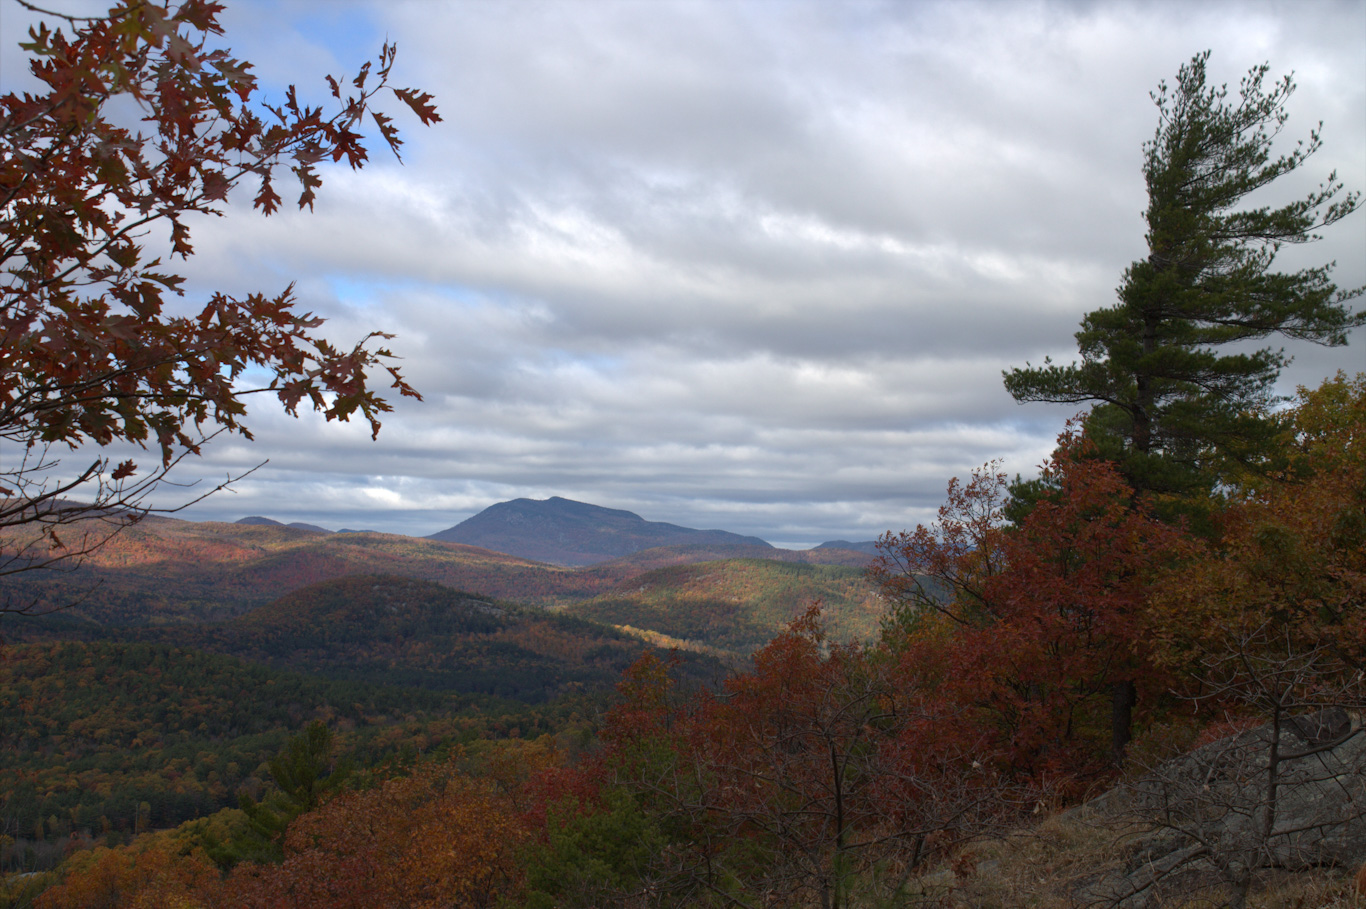 Hackensack Mountain hike with views of fall foliage